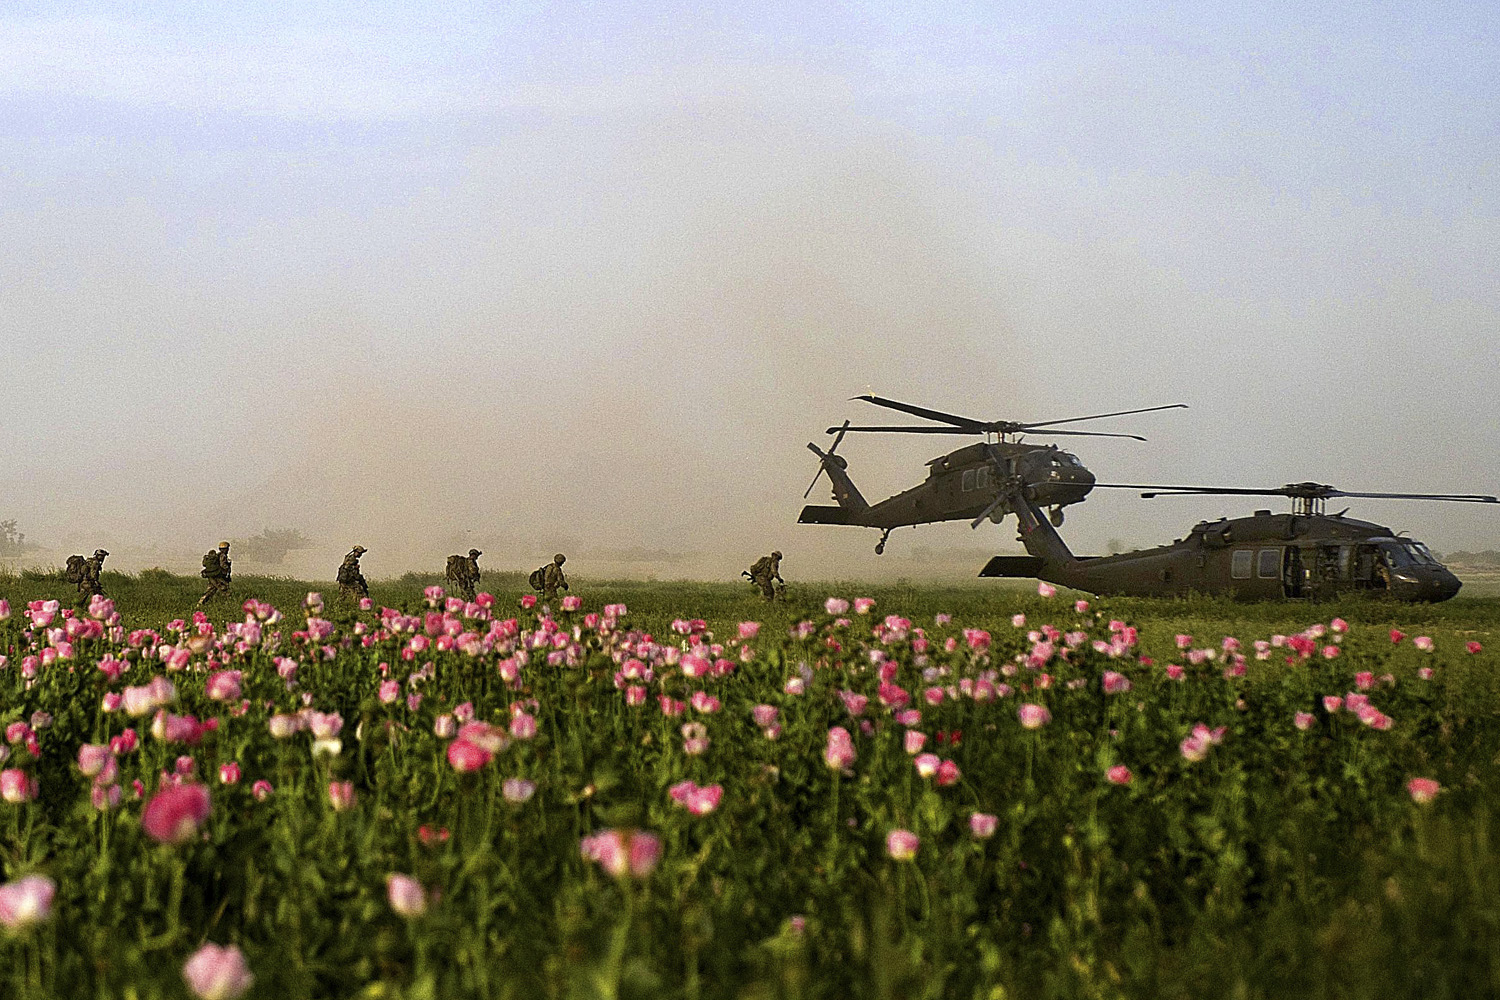 April 26, 2011. U.S. Special Operations service members with Special Operations Task Force South board two UH-60 Black Hawk helicopters following a clearing operation in Kandahar, Afghanistan.